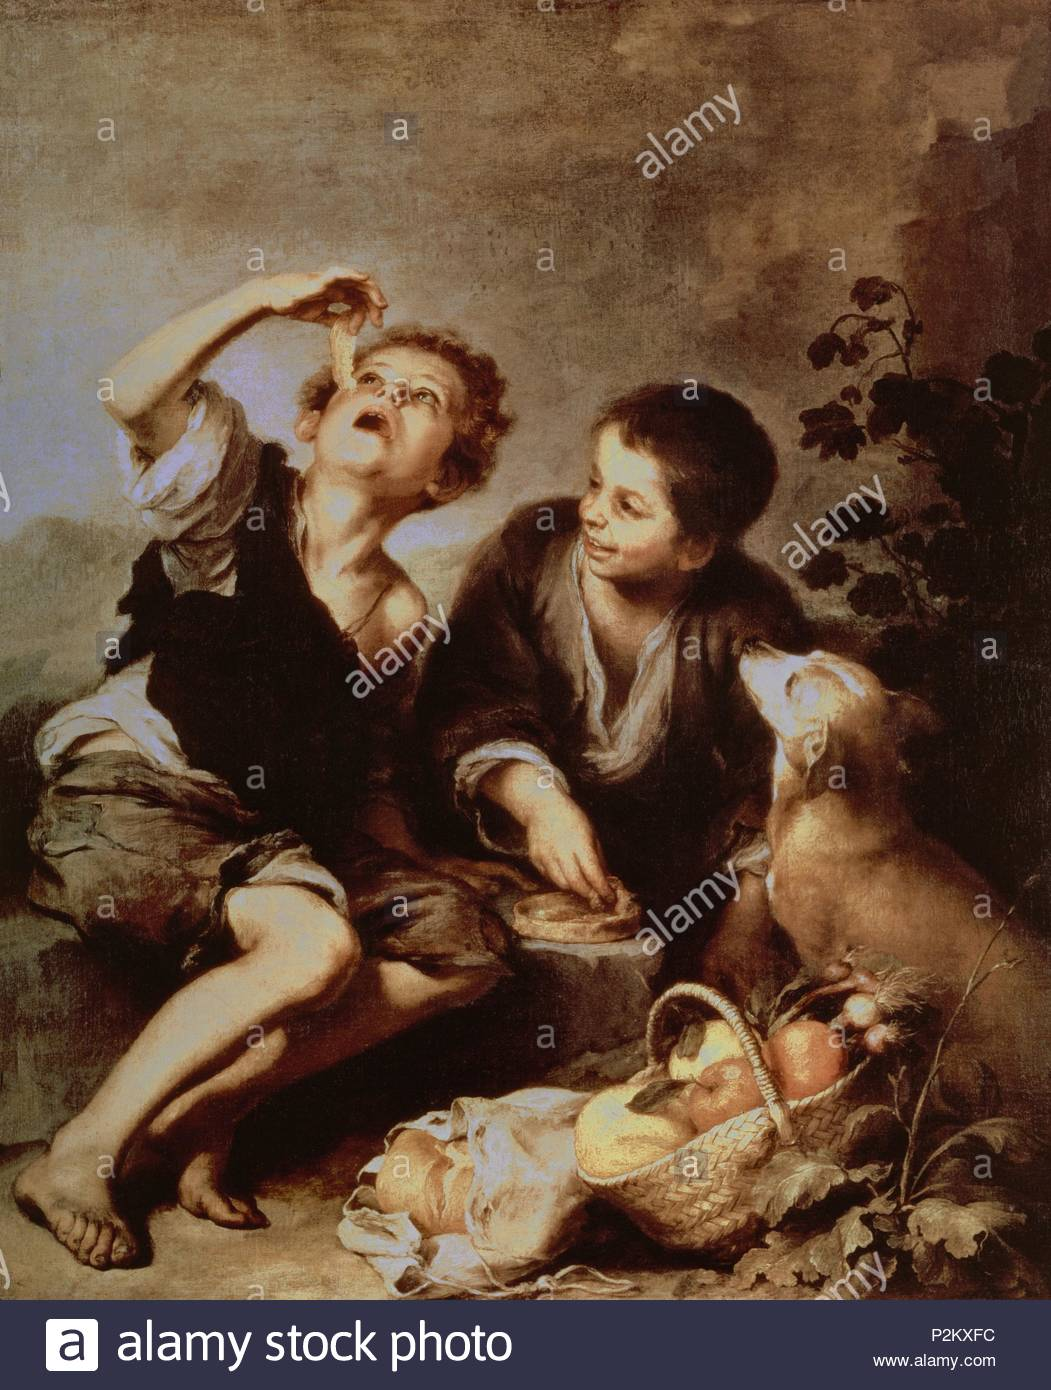 Children Eating A Pie 167075 123x102 Cm Oil On Canvas - Pasteles-nios